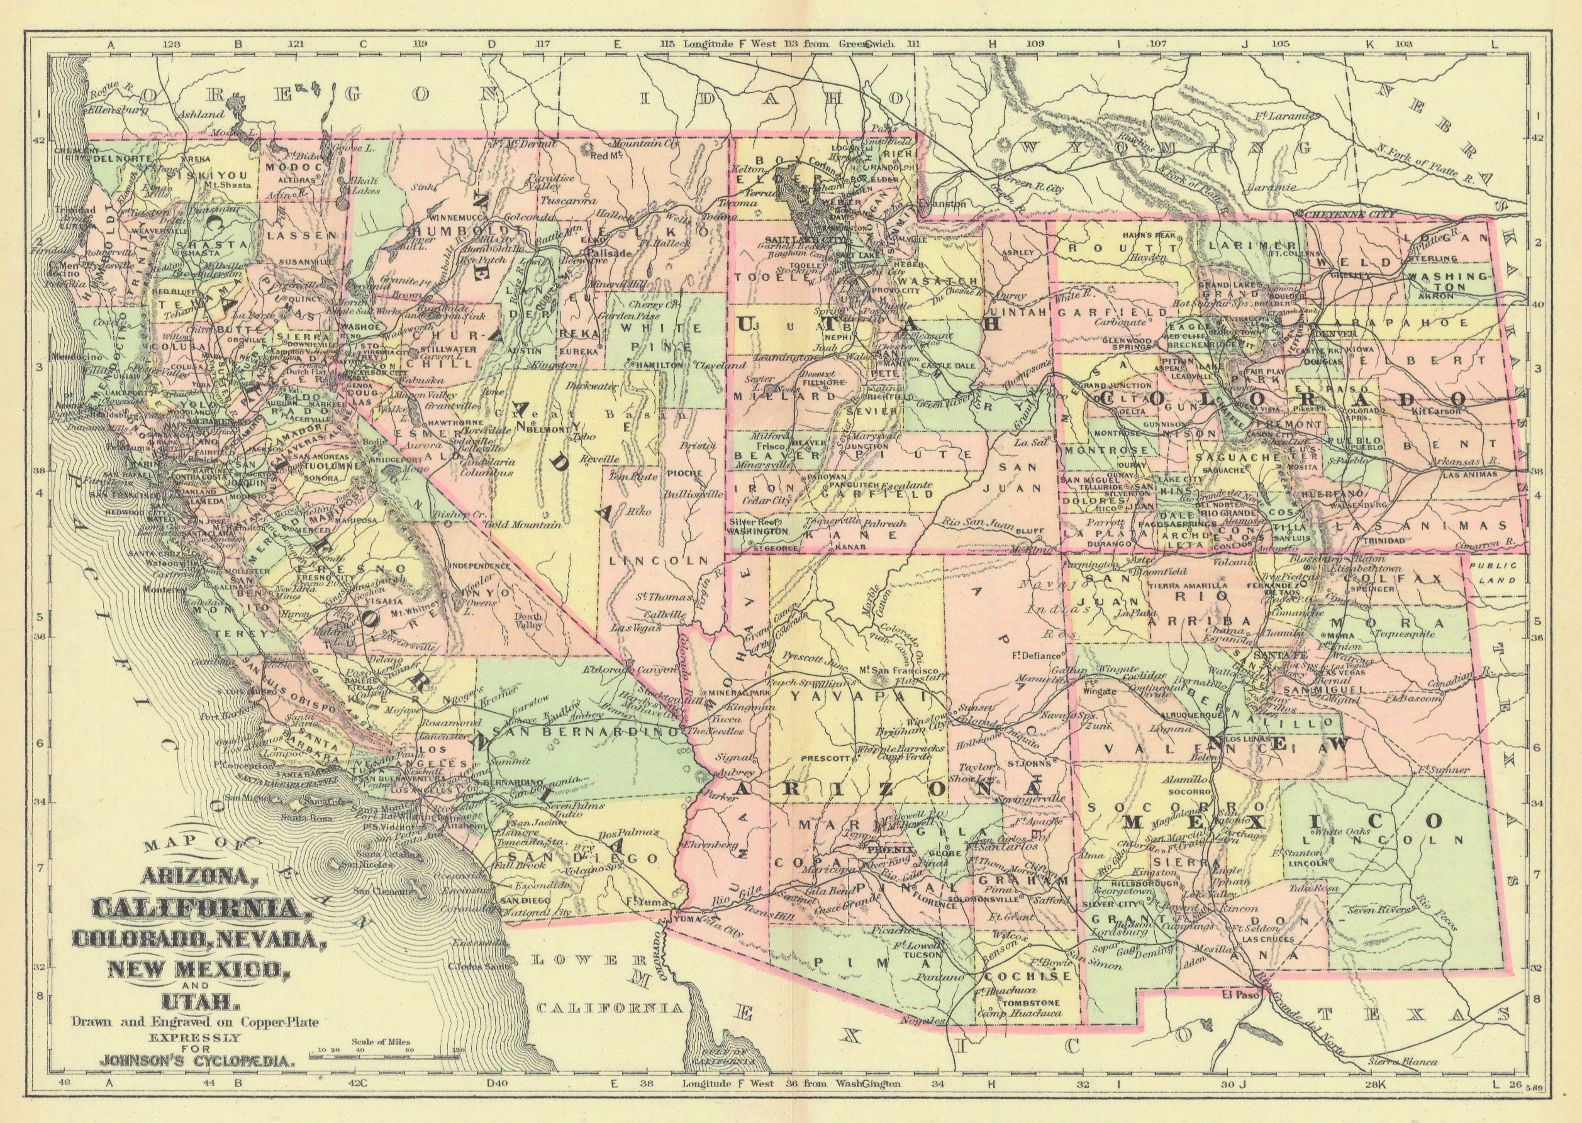 Map Of Arizona California Colorado Nevada New Mexico And Utah - Map of arizona and new mexico